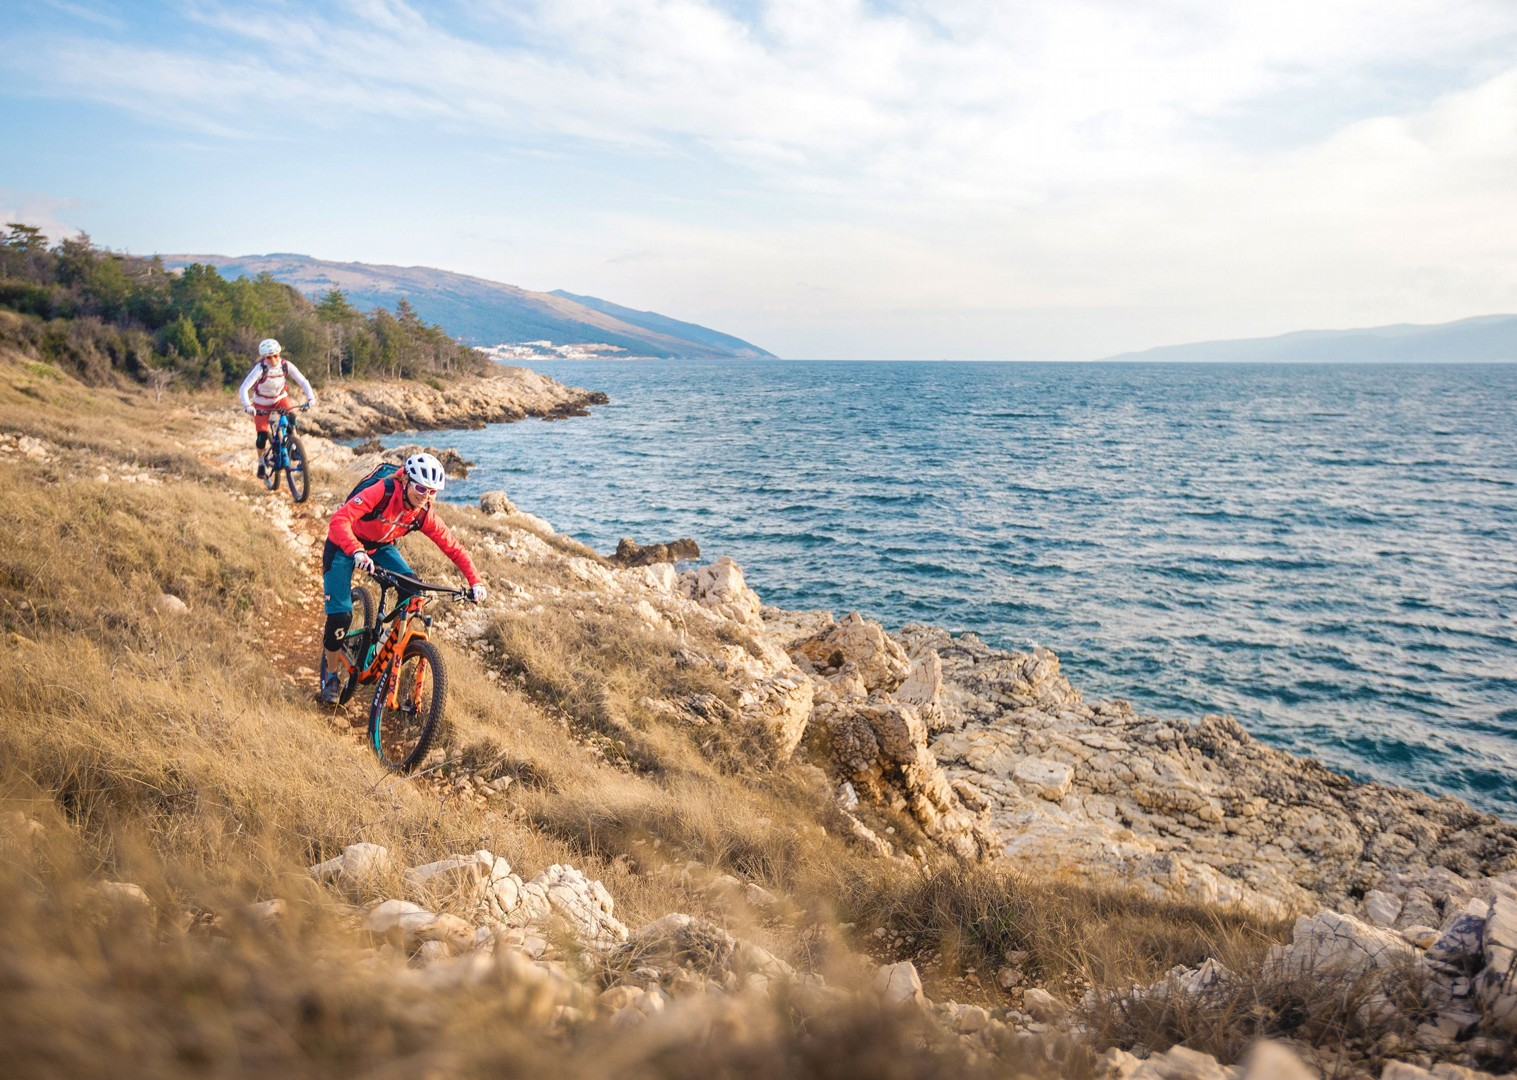 mountain-biking-in-croatia-new-holiday-skedaddle.jpg - Croatia - Terra Magica - Mountain Biking